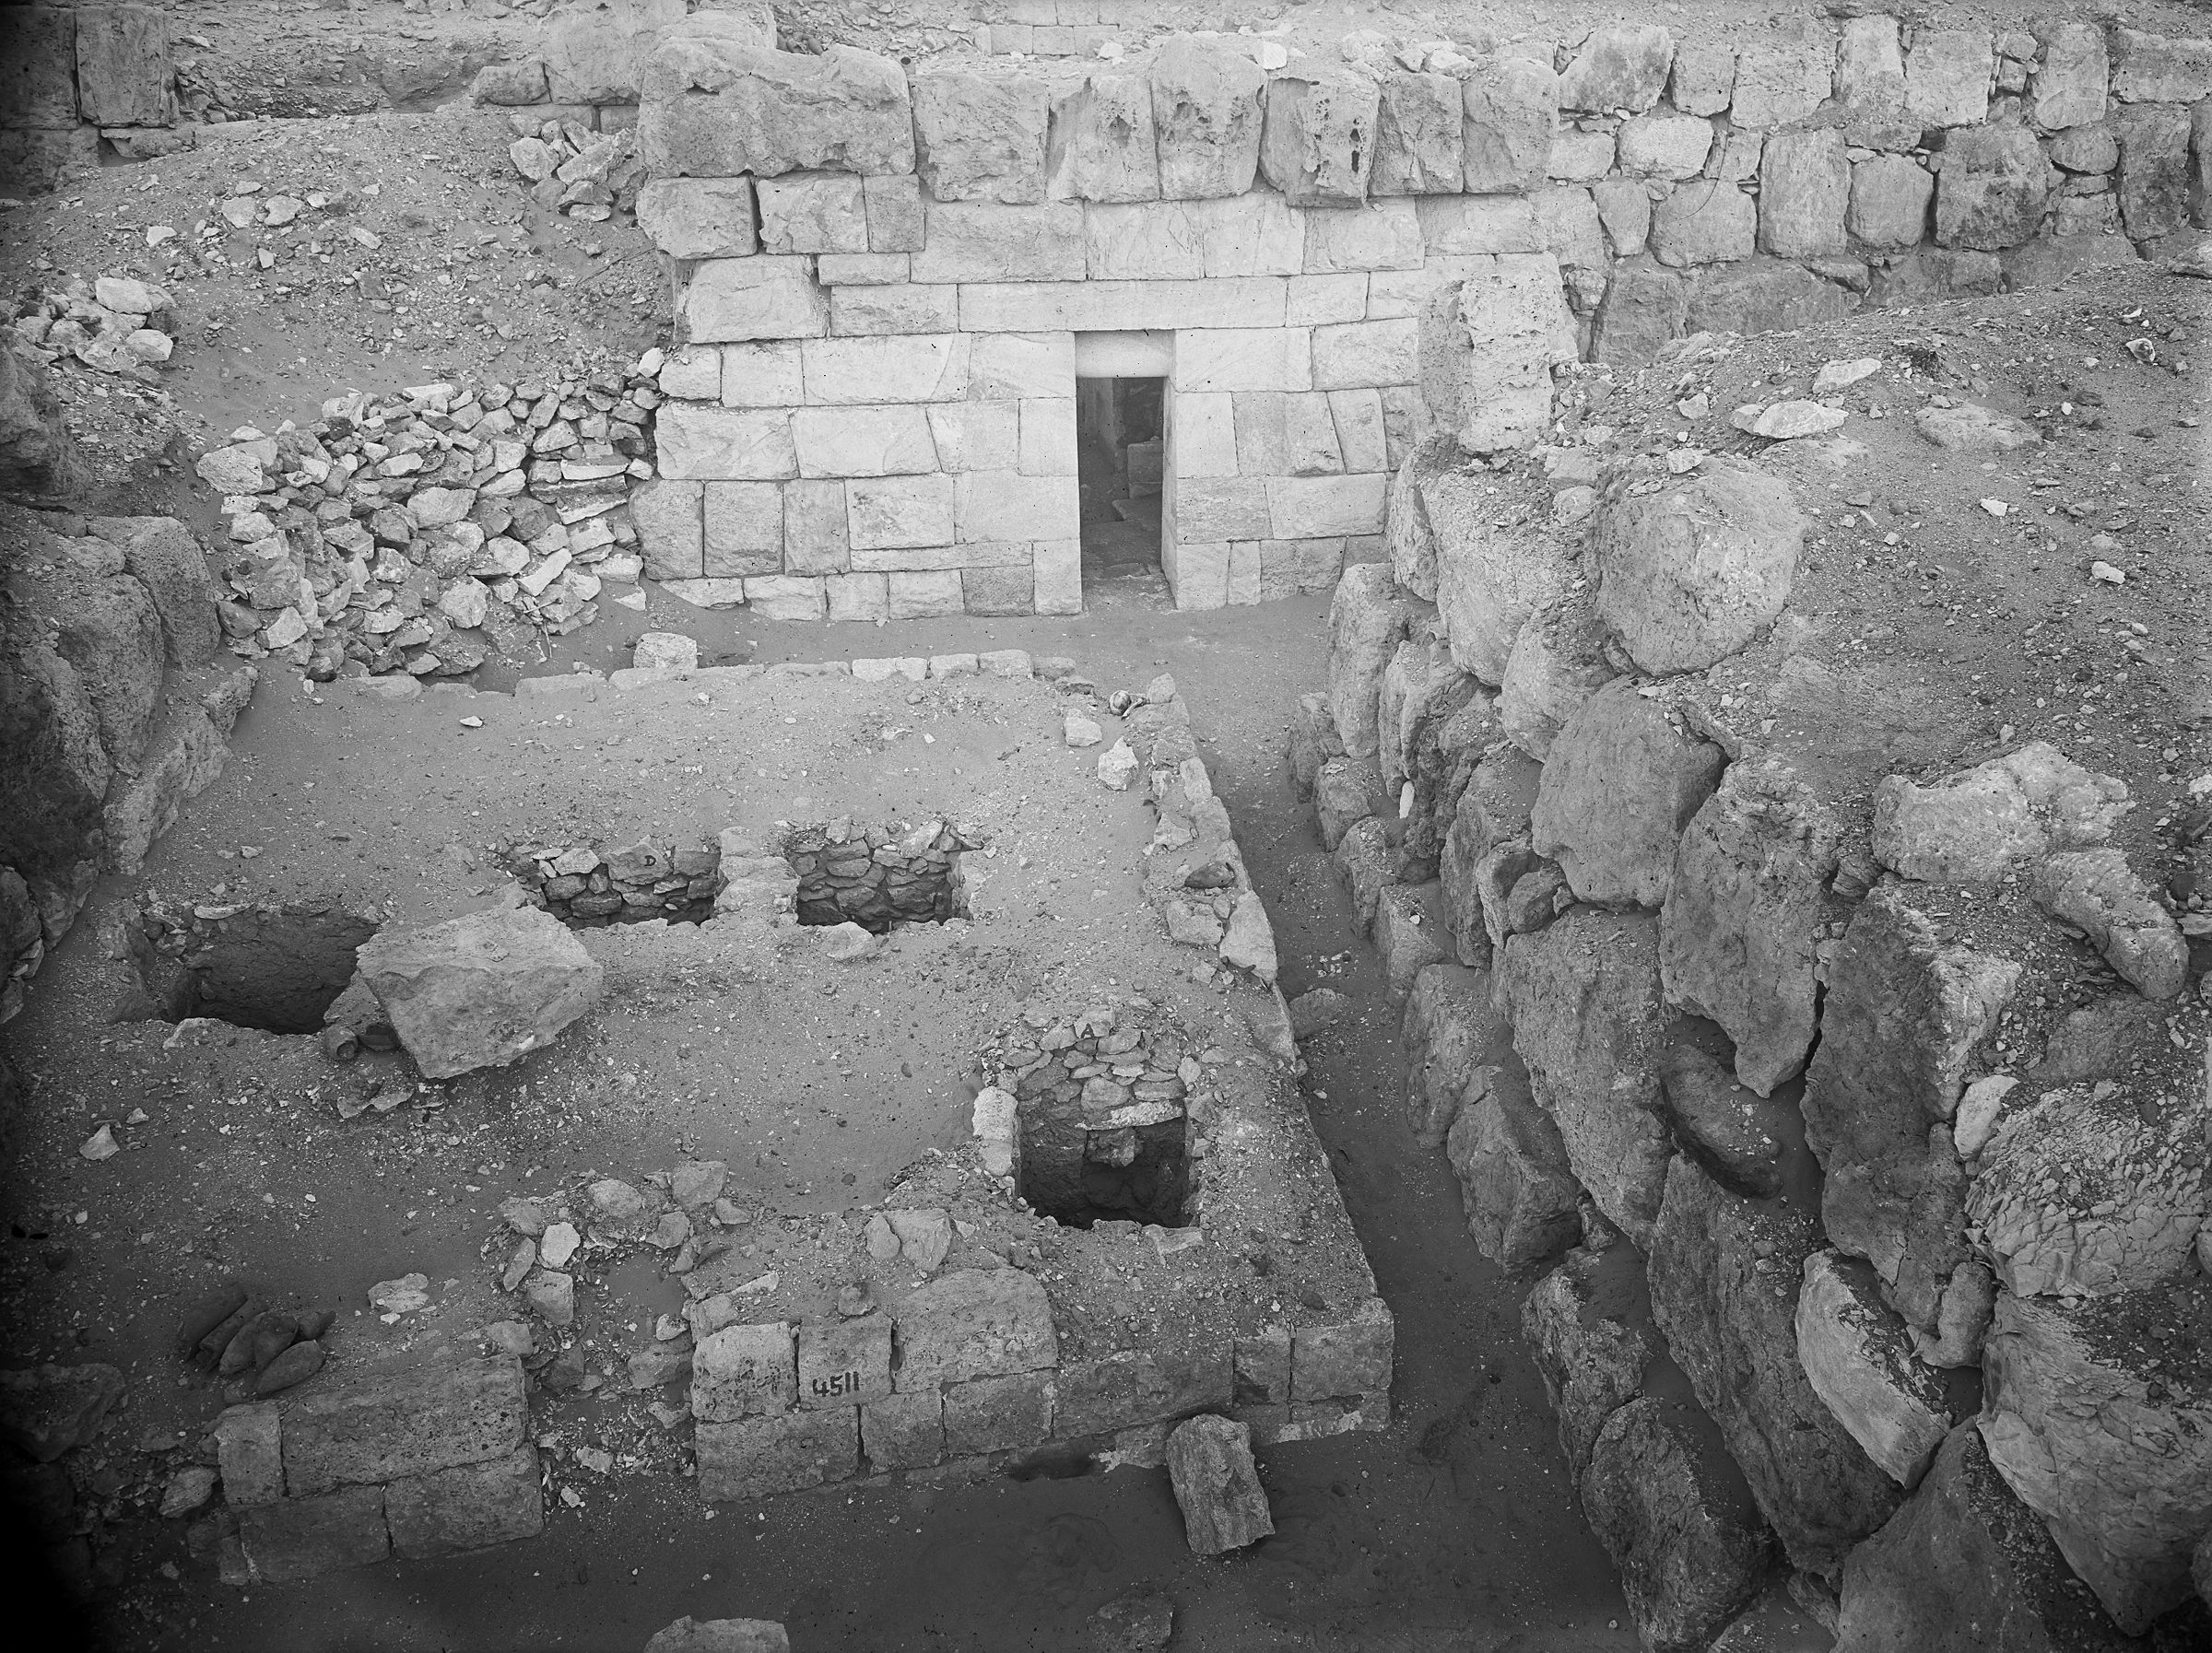 Western Cemetery: Site: Giza; View: G 4510, G 4511, G 4411, G 4520